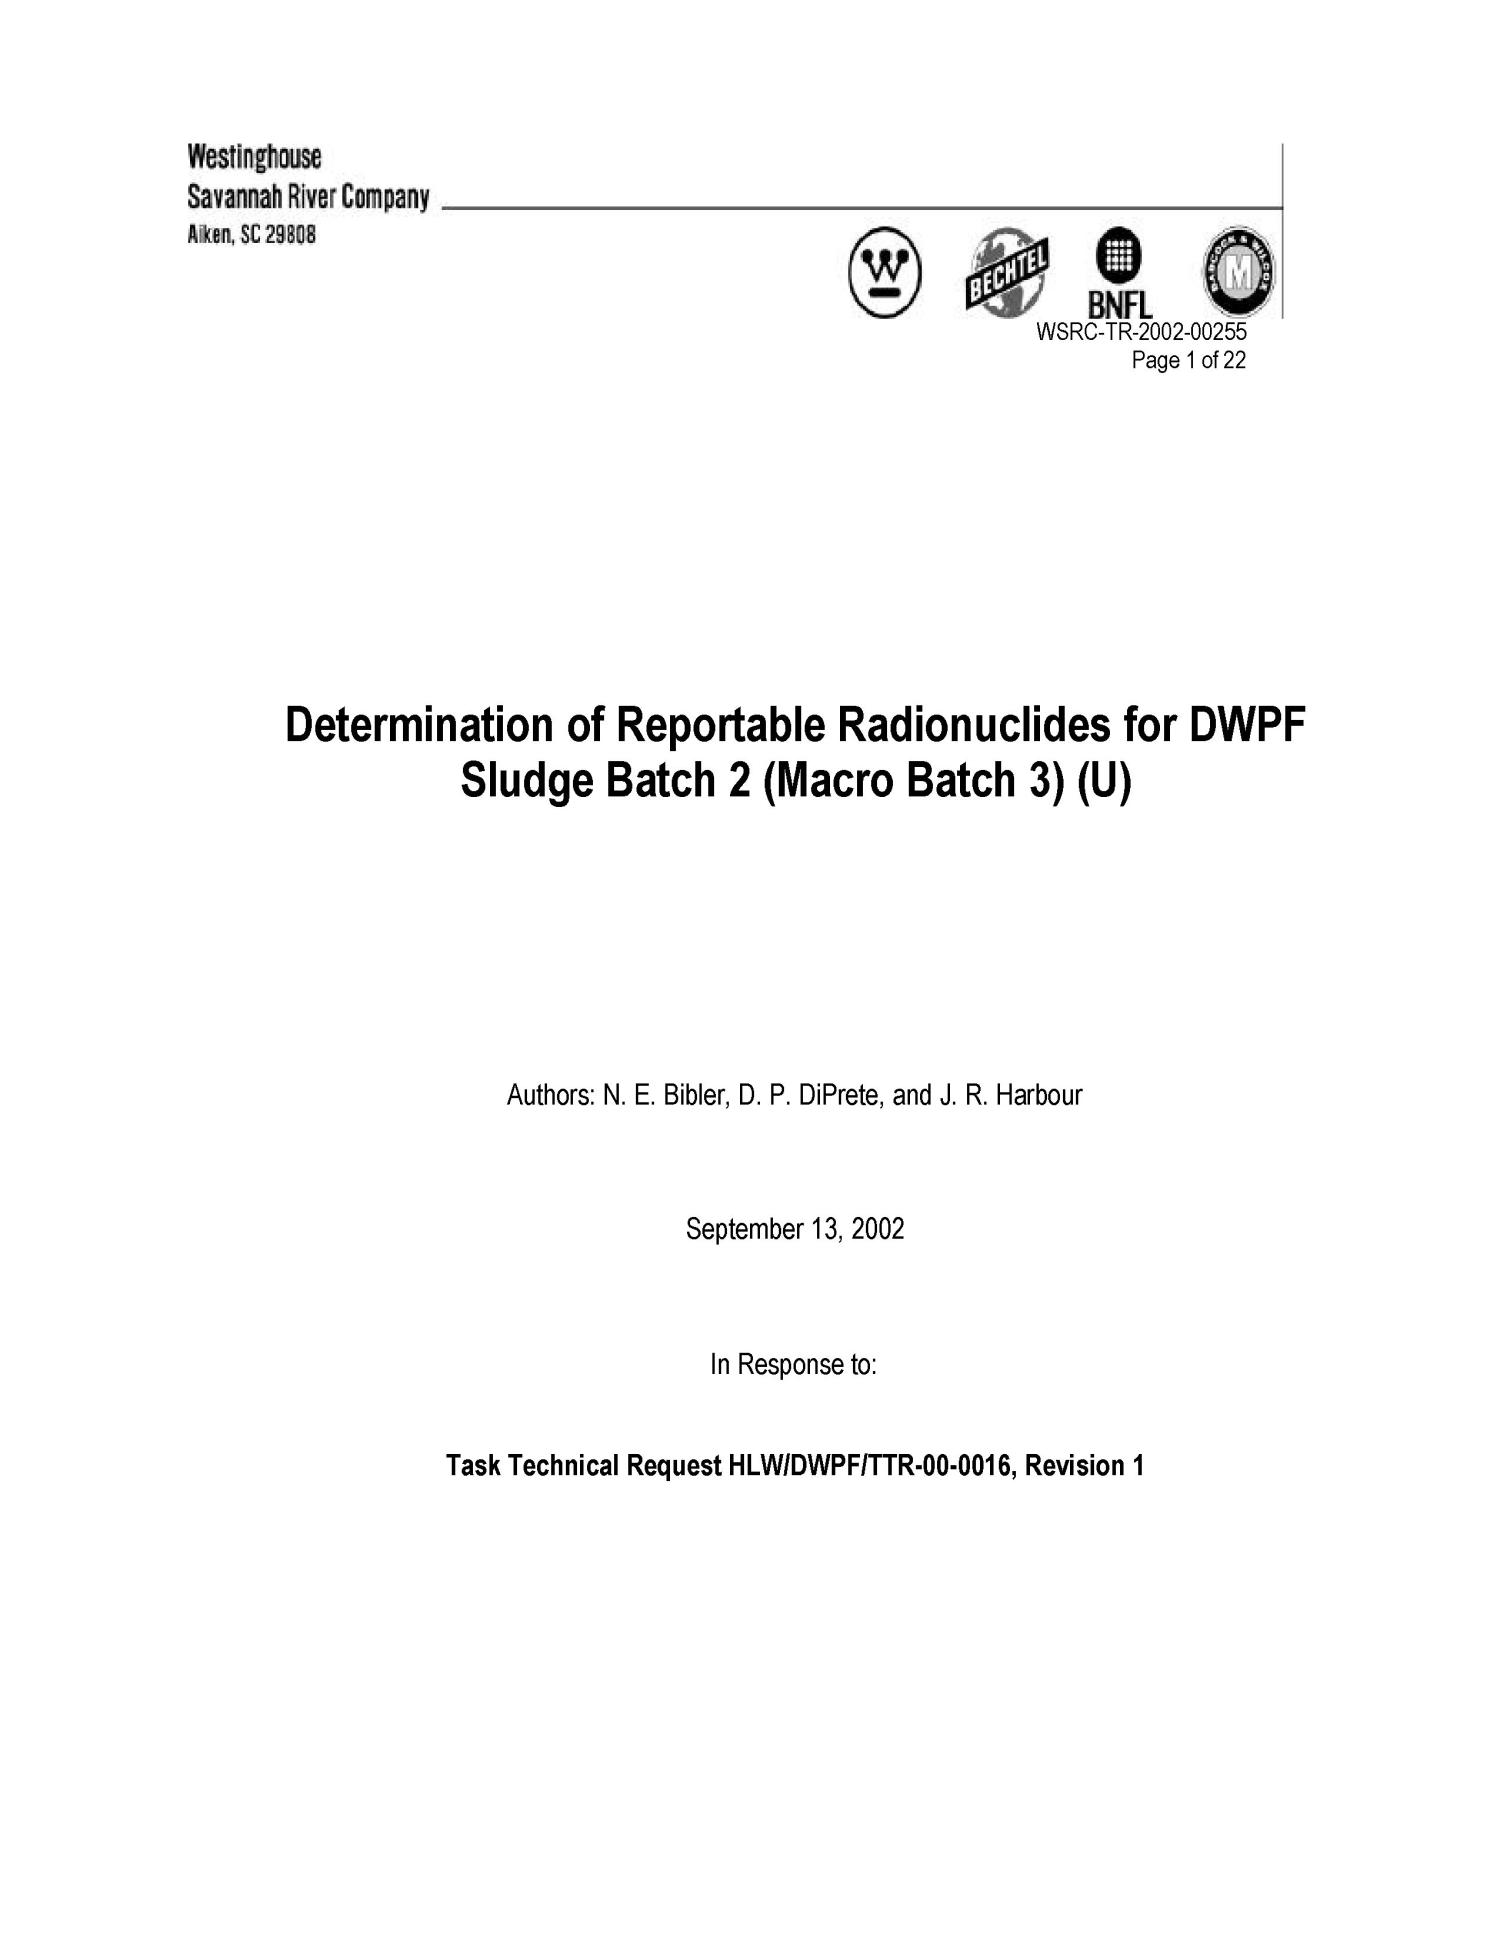 Determination of Reportable Radionuclides for DWPF Sludge Batch 2 (Macro Batch 3)                                                                                                      [Sequence #]: 1 of 22